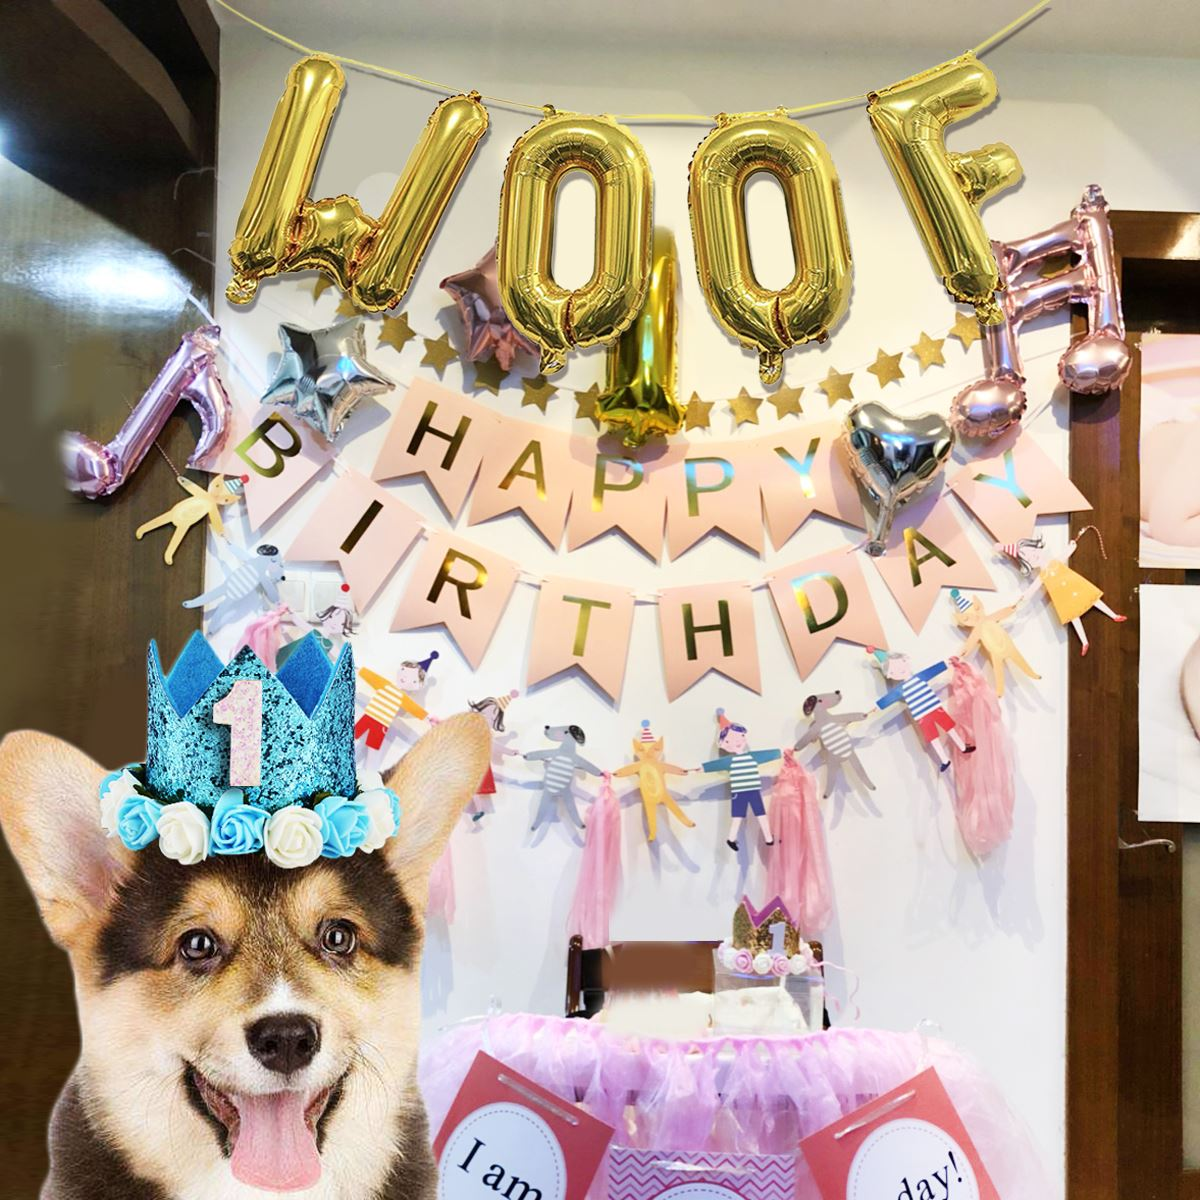 4PCS 16 Foil Balloon Woof Letter Decorative Decoration For Pets Birthday Party In Dog Accessories From Home Garden On Aliexpress